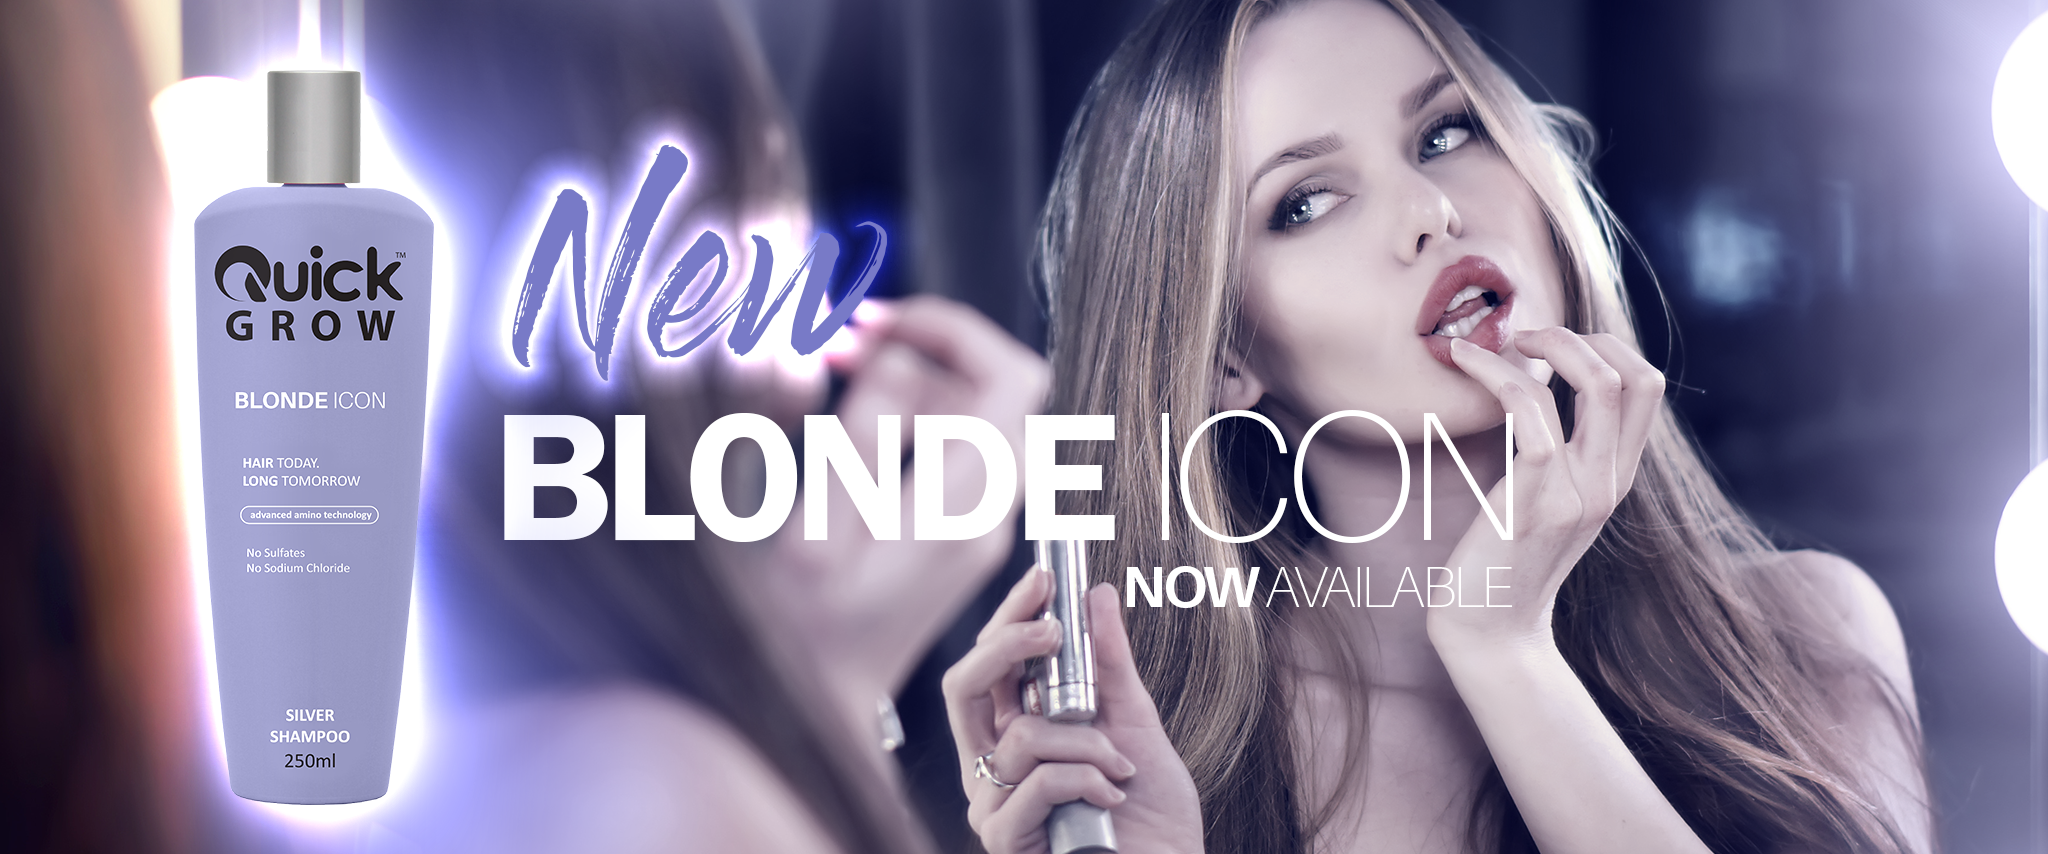 BLONDE-ICON-new.png